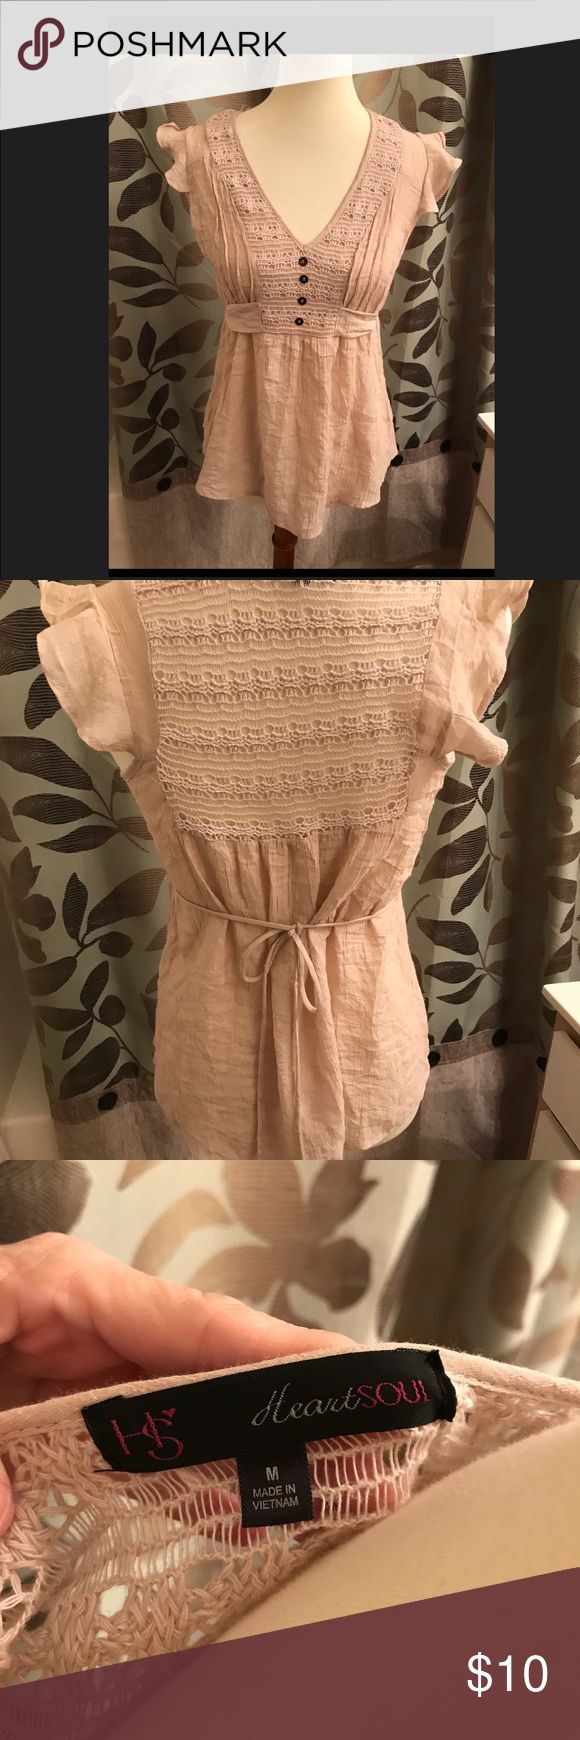 Heart and Soul Smock Top Beige gauze, capped sleeves and waist tie. Tops